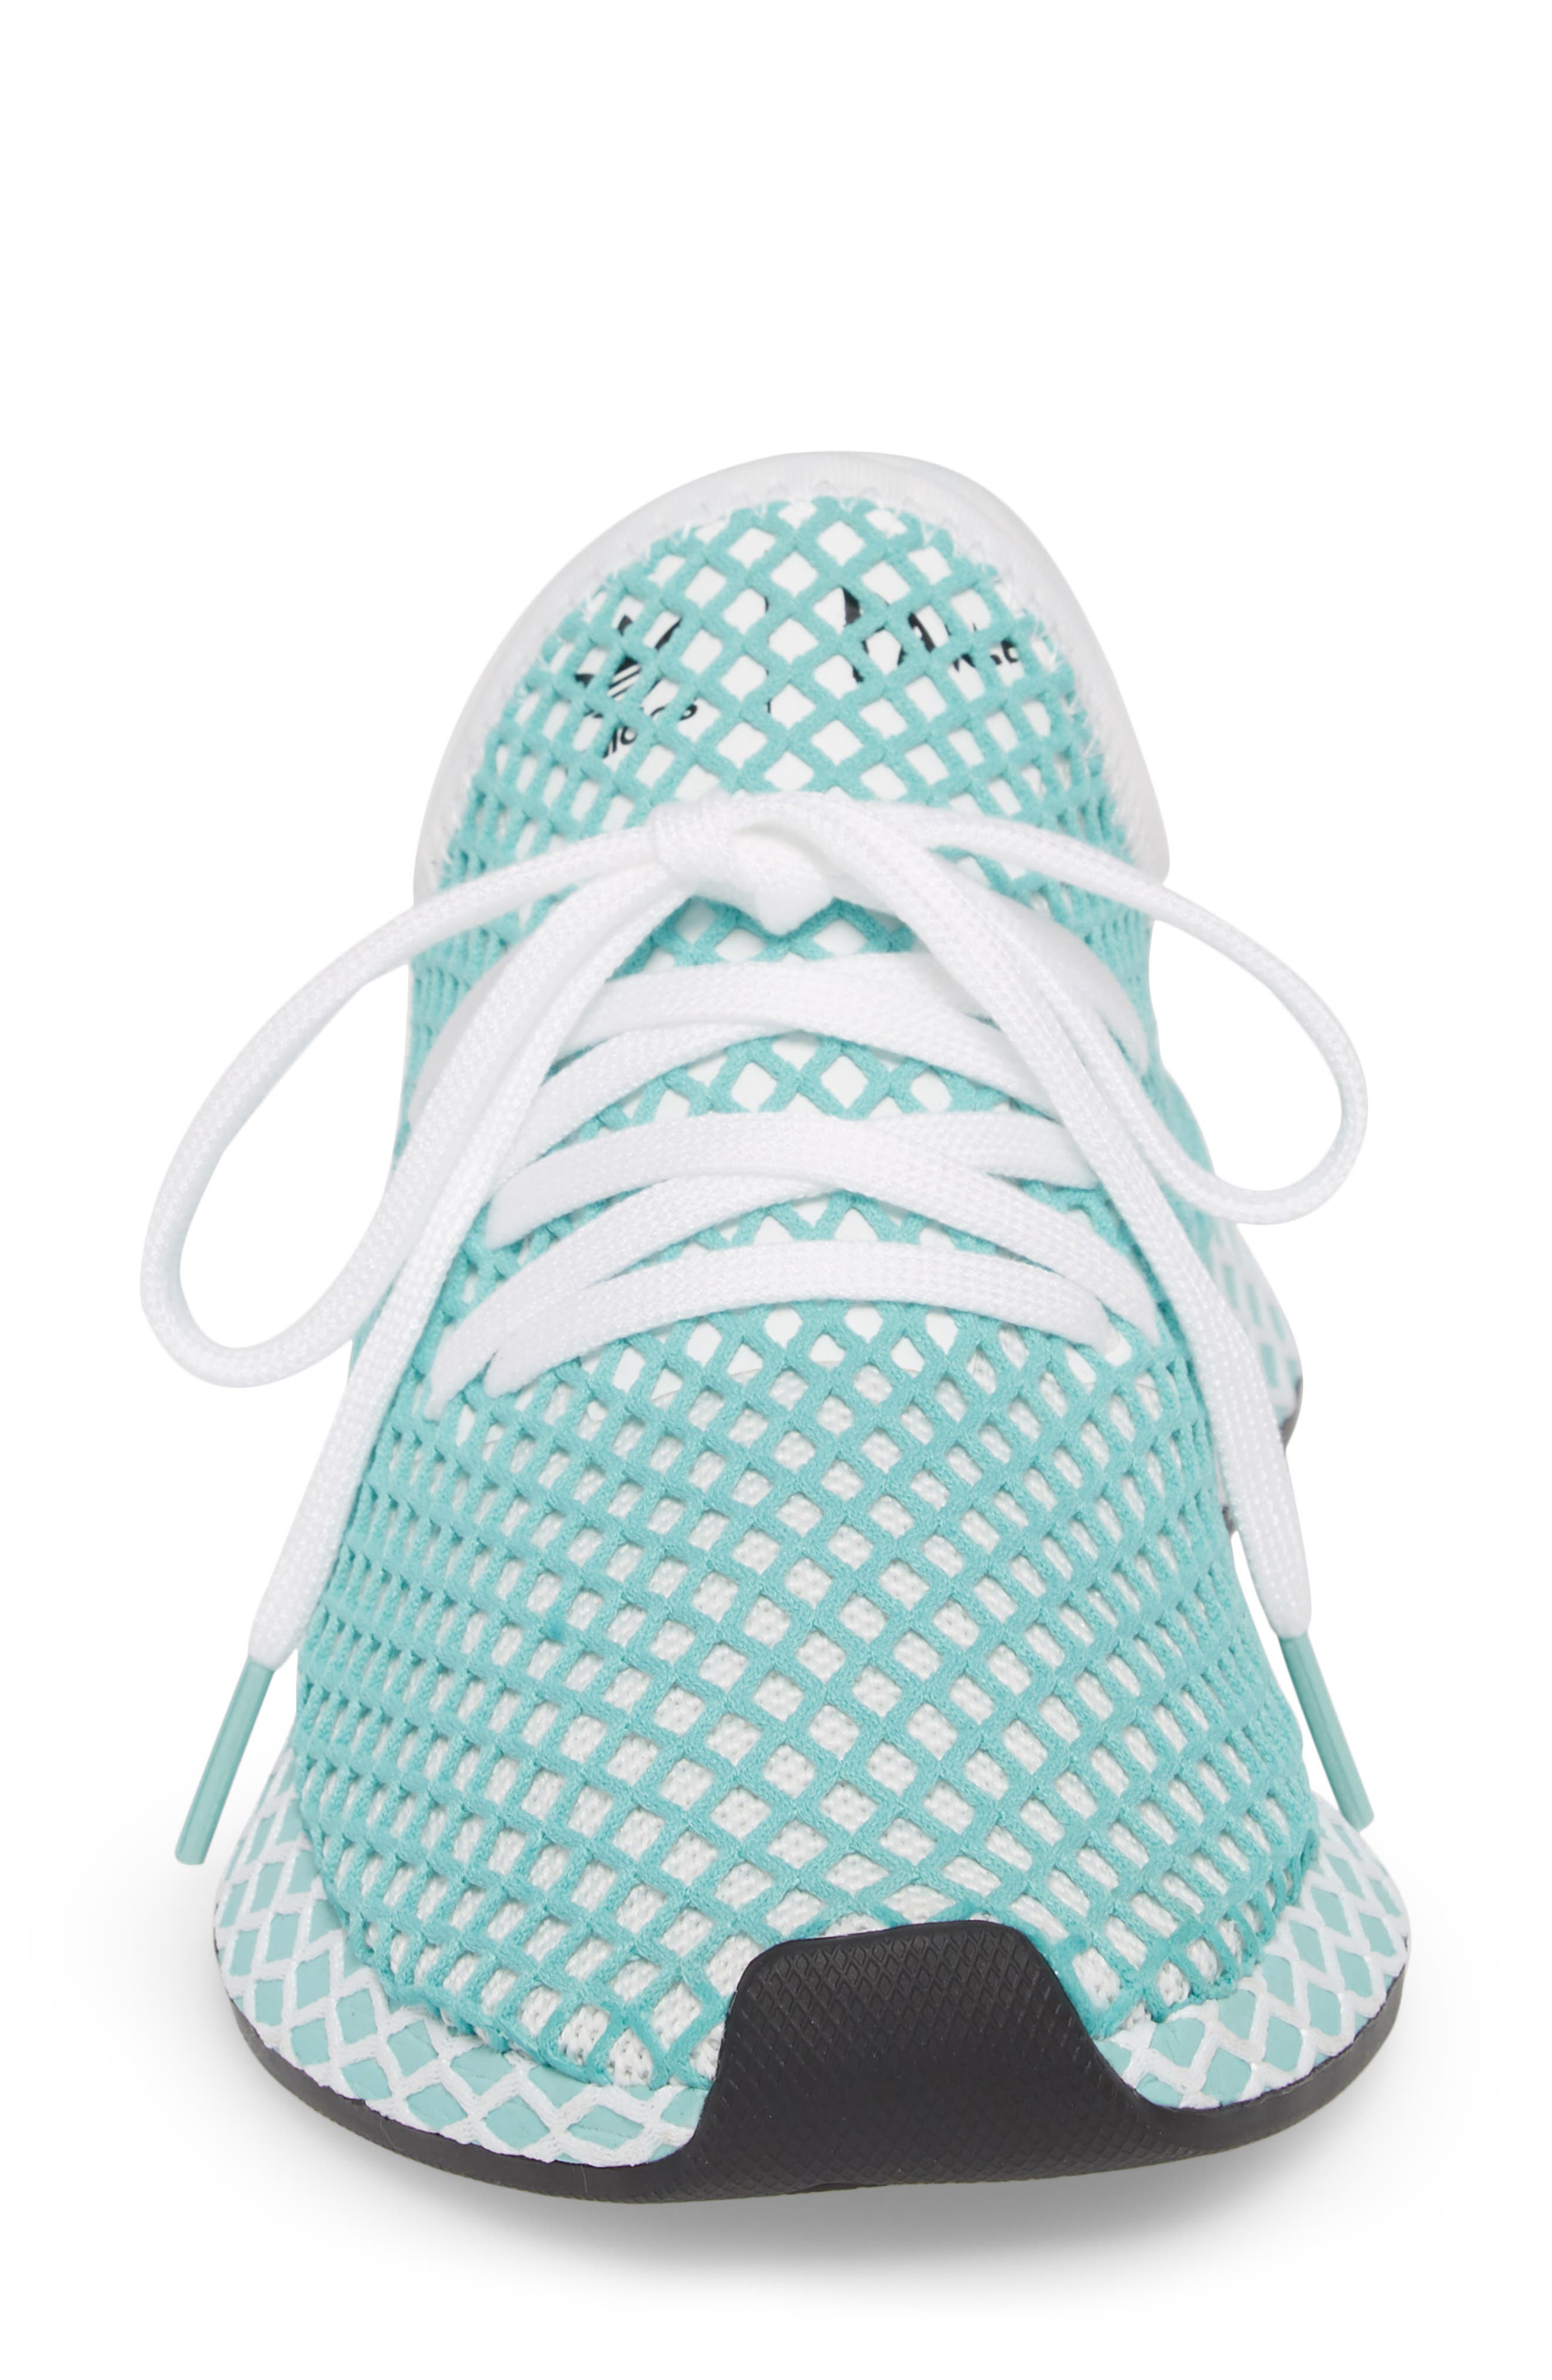 Deerupt x Parley Runner Sneaker,                             Alternate thumbnail 4, color,                             White/ White/ Blue Spirit